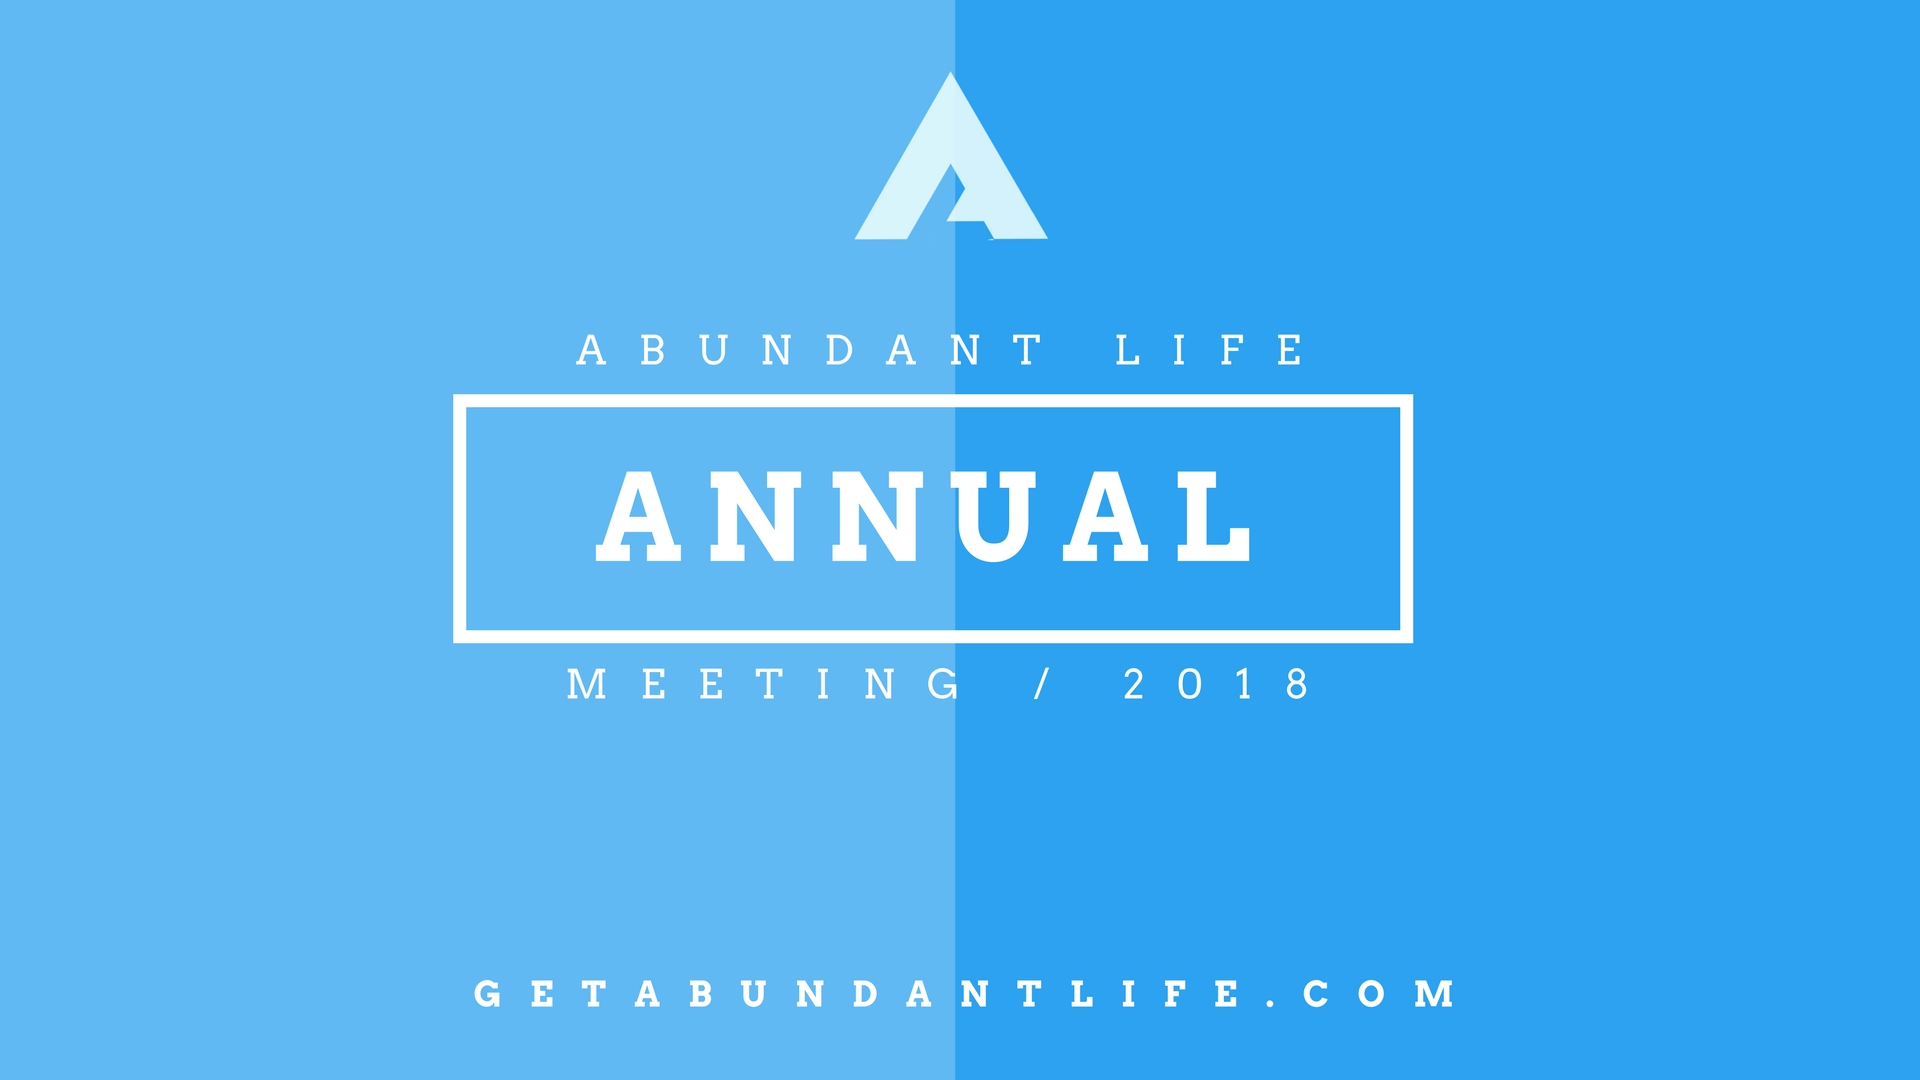 Annual Meeting 2018 Image